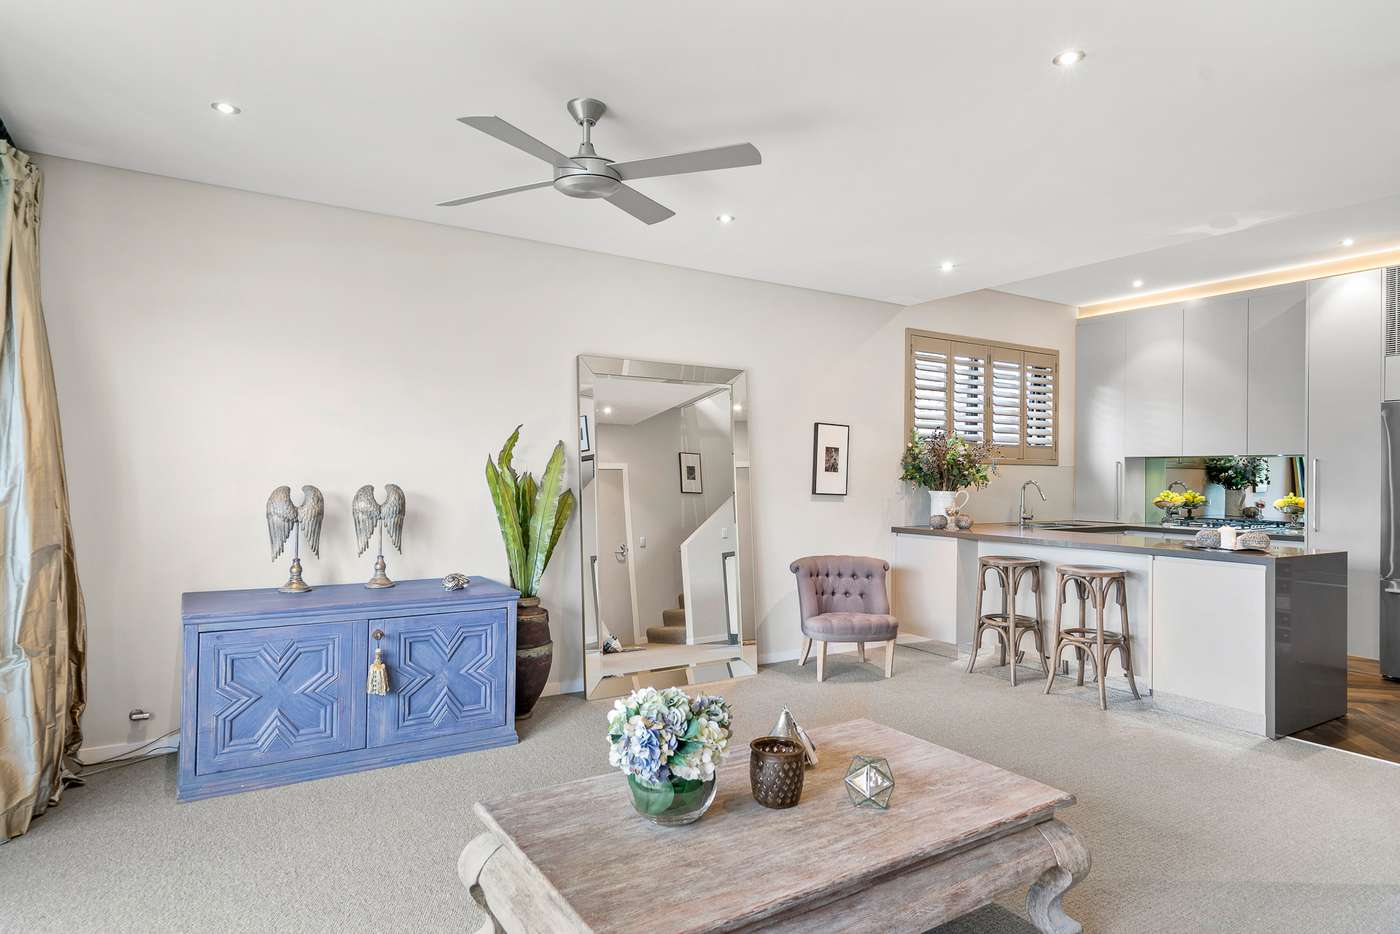 Sixth view of Homely apartment listing, 184 Forbes Street, Darlinghurst NSW 2010